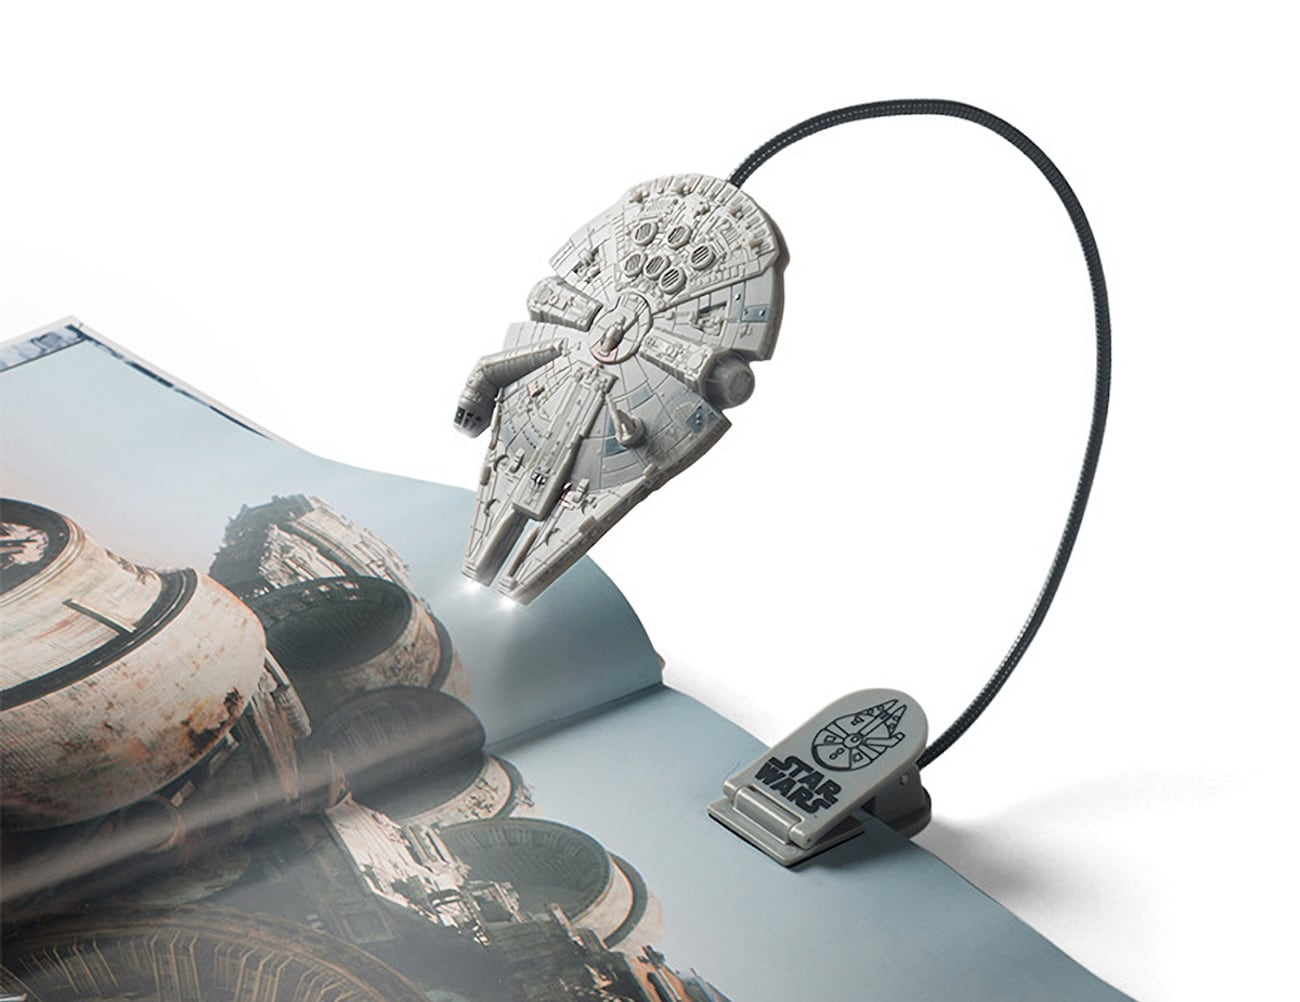 ThinkGeek Millennium Falcon Book Light